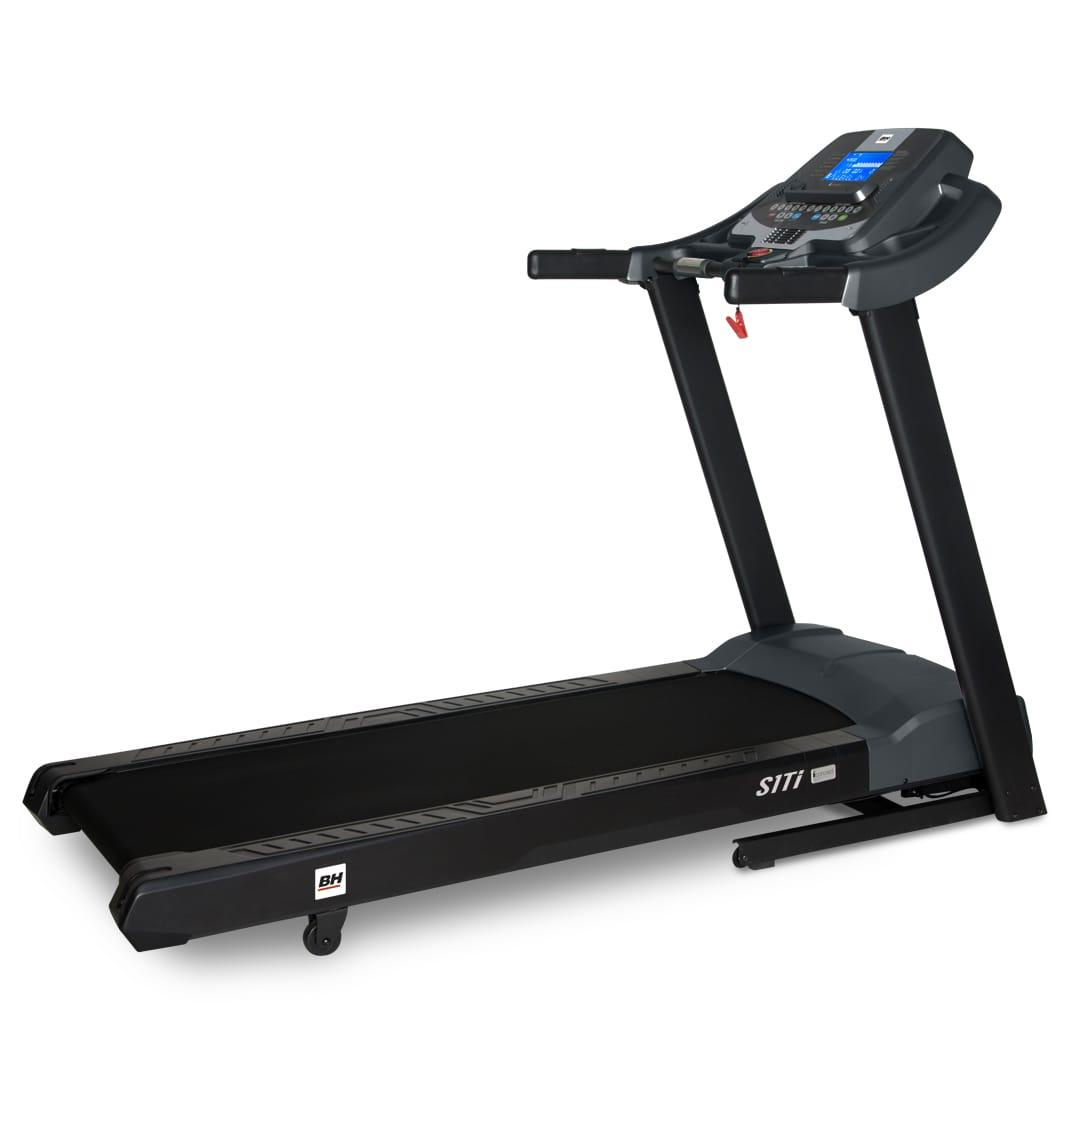 bh fitness s1ti review 2019 treadmillreviews netlaunched in late 2014, the s1ti treadmill is part of an affordable new series by bh fitness bh fitness is best known for read more